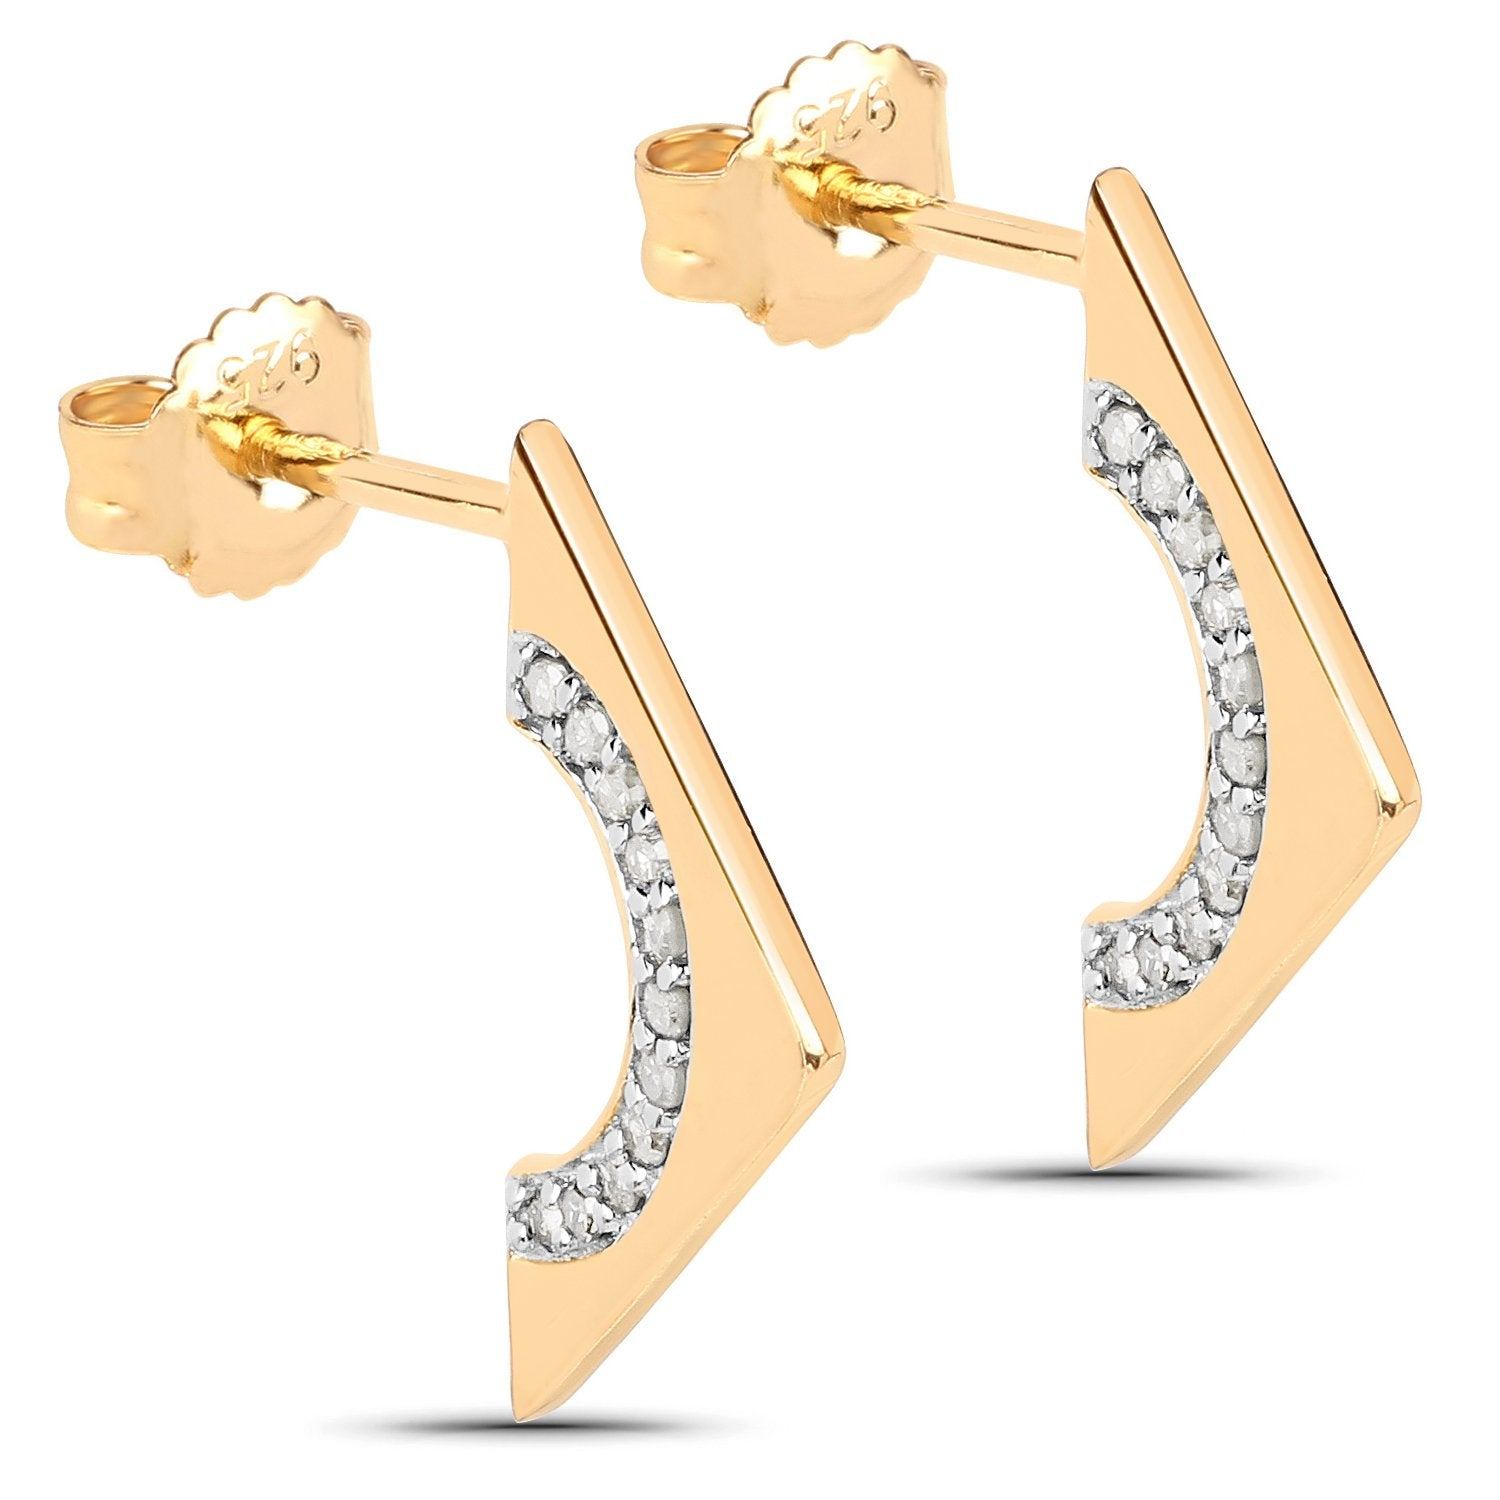 LoveHuang 0.16 Carats Genuine White Diamond (I-J, I2-I3) Arrowhead Earrings Solid .925 Sterling Silver With 18KT Yellow Gold Plating